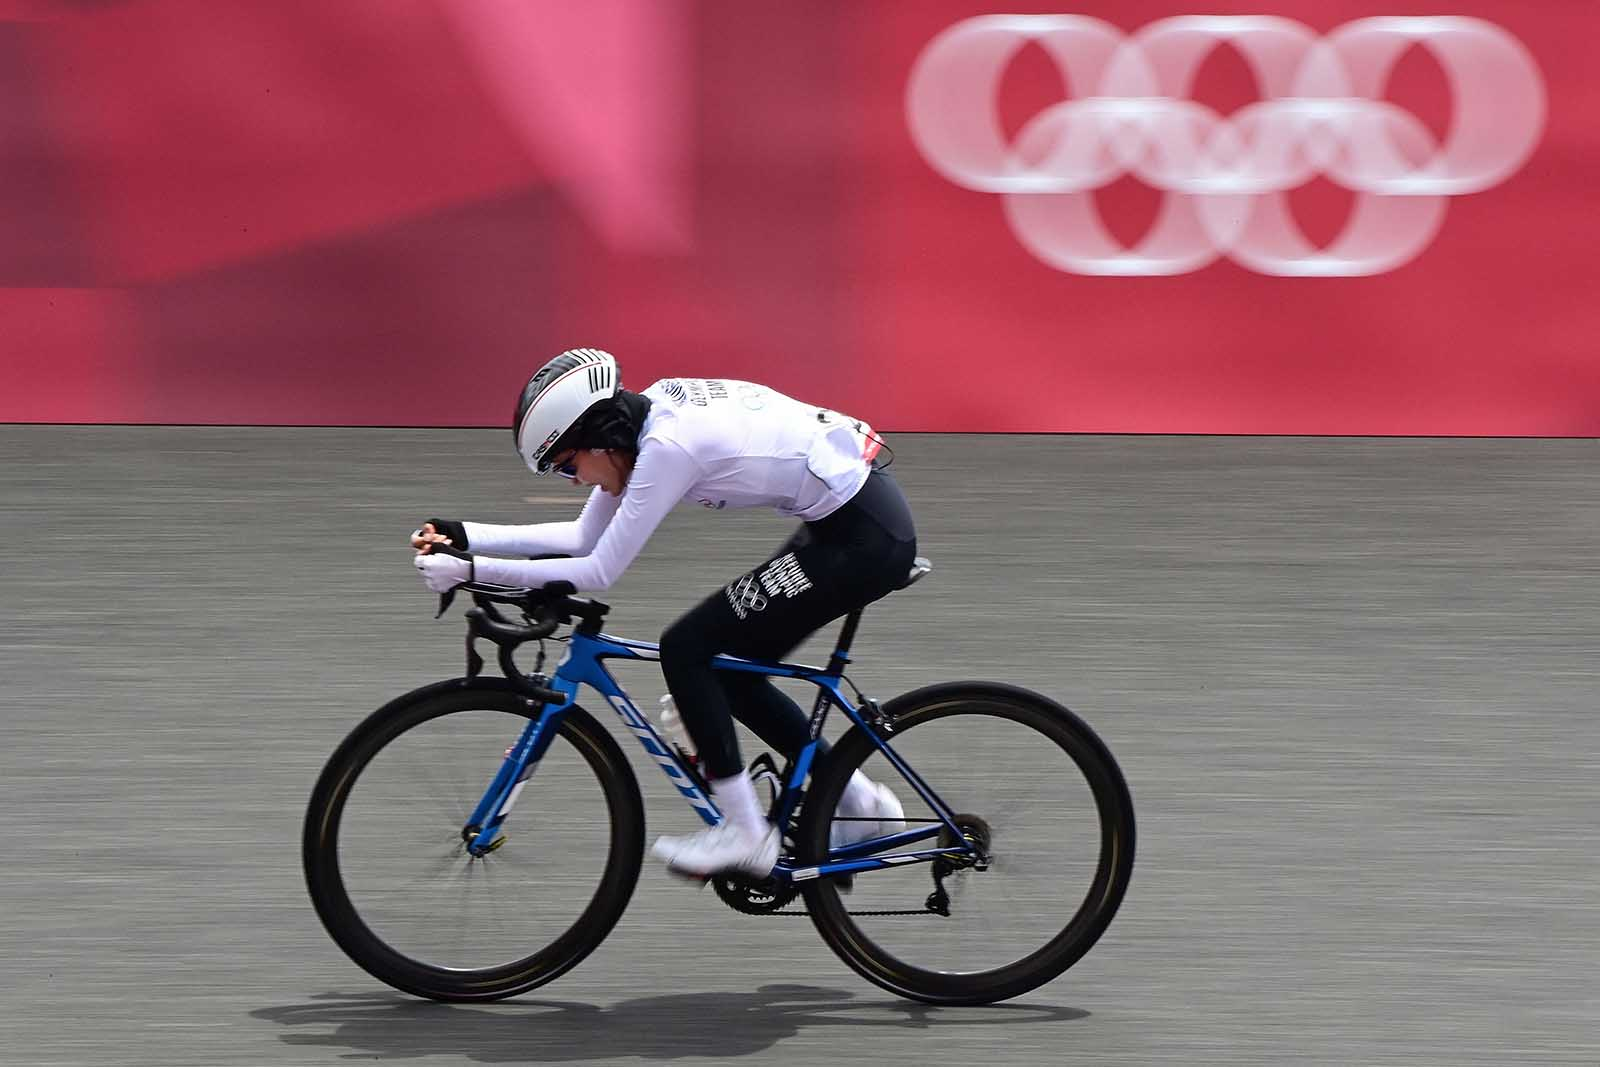 Ali Zada competes in the women's cycling road individual time trial in Oyama, Japan, on Wednesday.